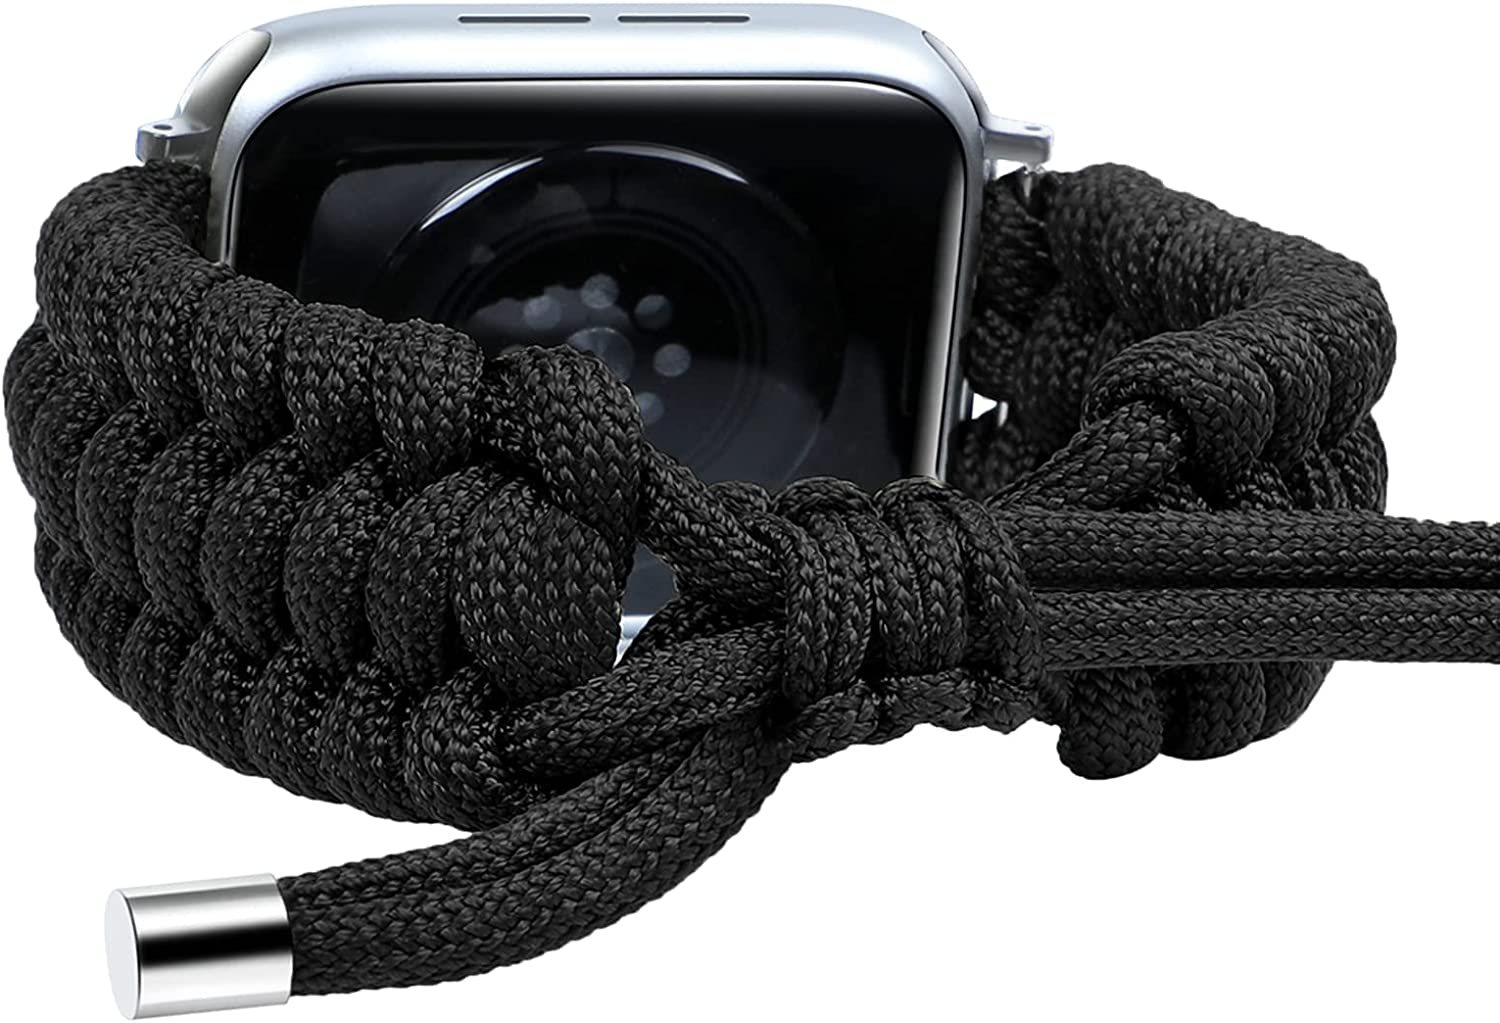 Fun Gaau Nylon Braided Compatible Black Apple Watch Band 42mm 44mm Paracord Adjustable Woven Strap for iwatch Series 6/5/4/3/2/1 Replacement Wristband